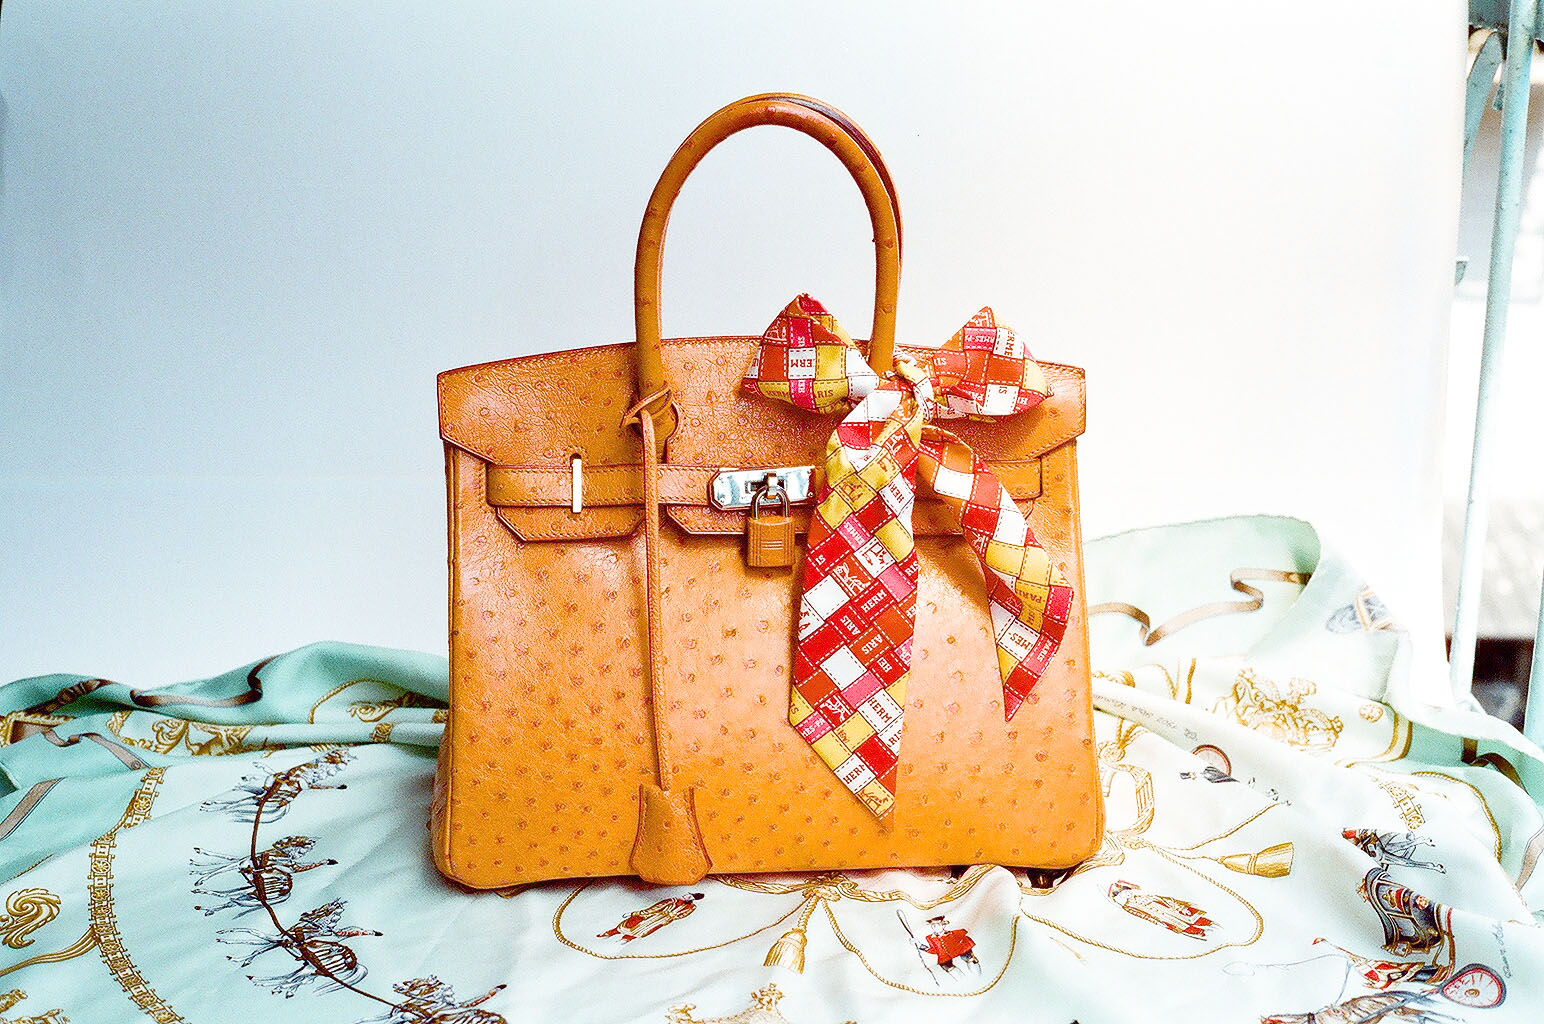 hermes birkin bag outlet - Birkin bag - Wikipedia, the free encyclopedia